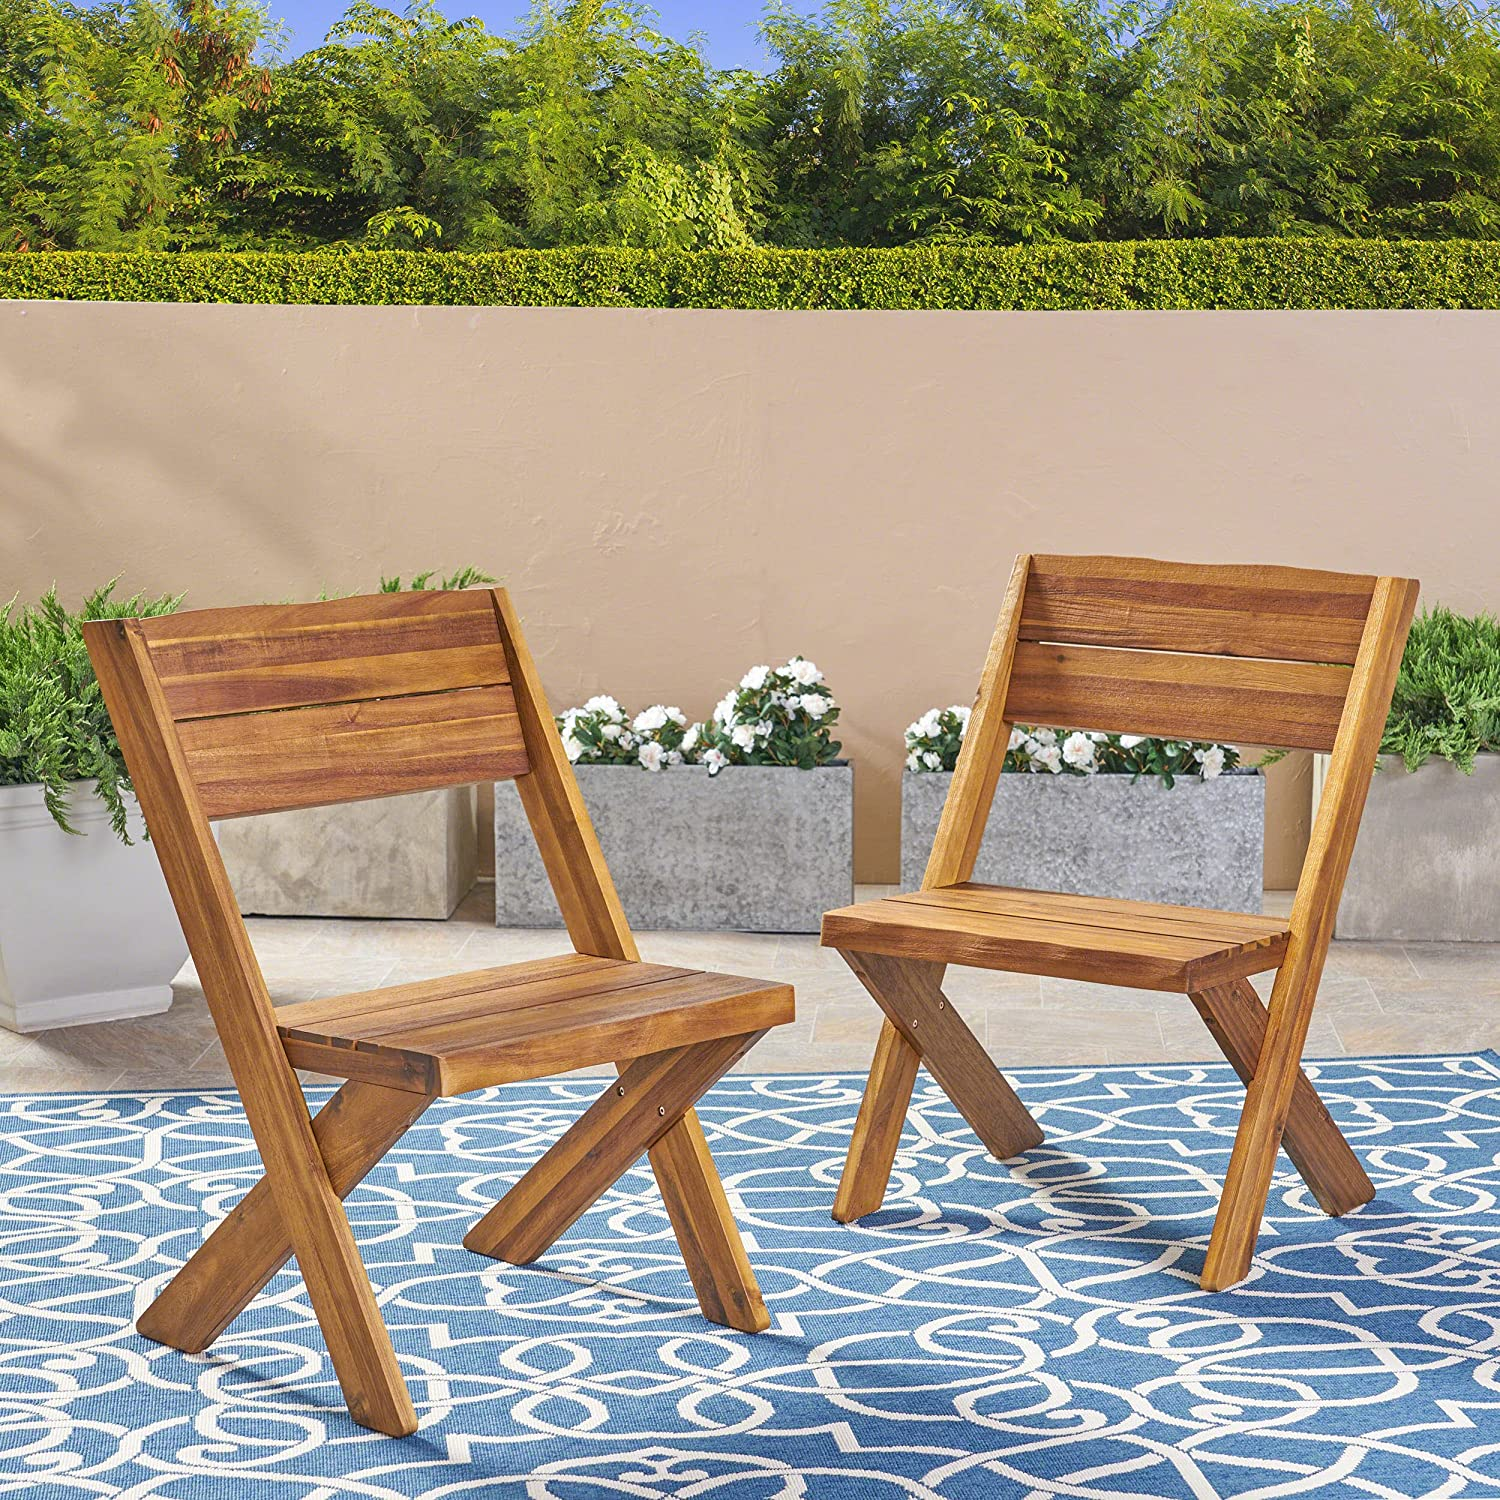 Amazon com great deal furniture irene outdoor acacia wood chairs set of 2 teak kitchen dining